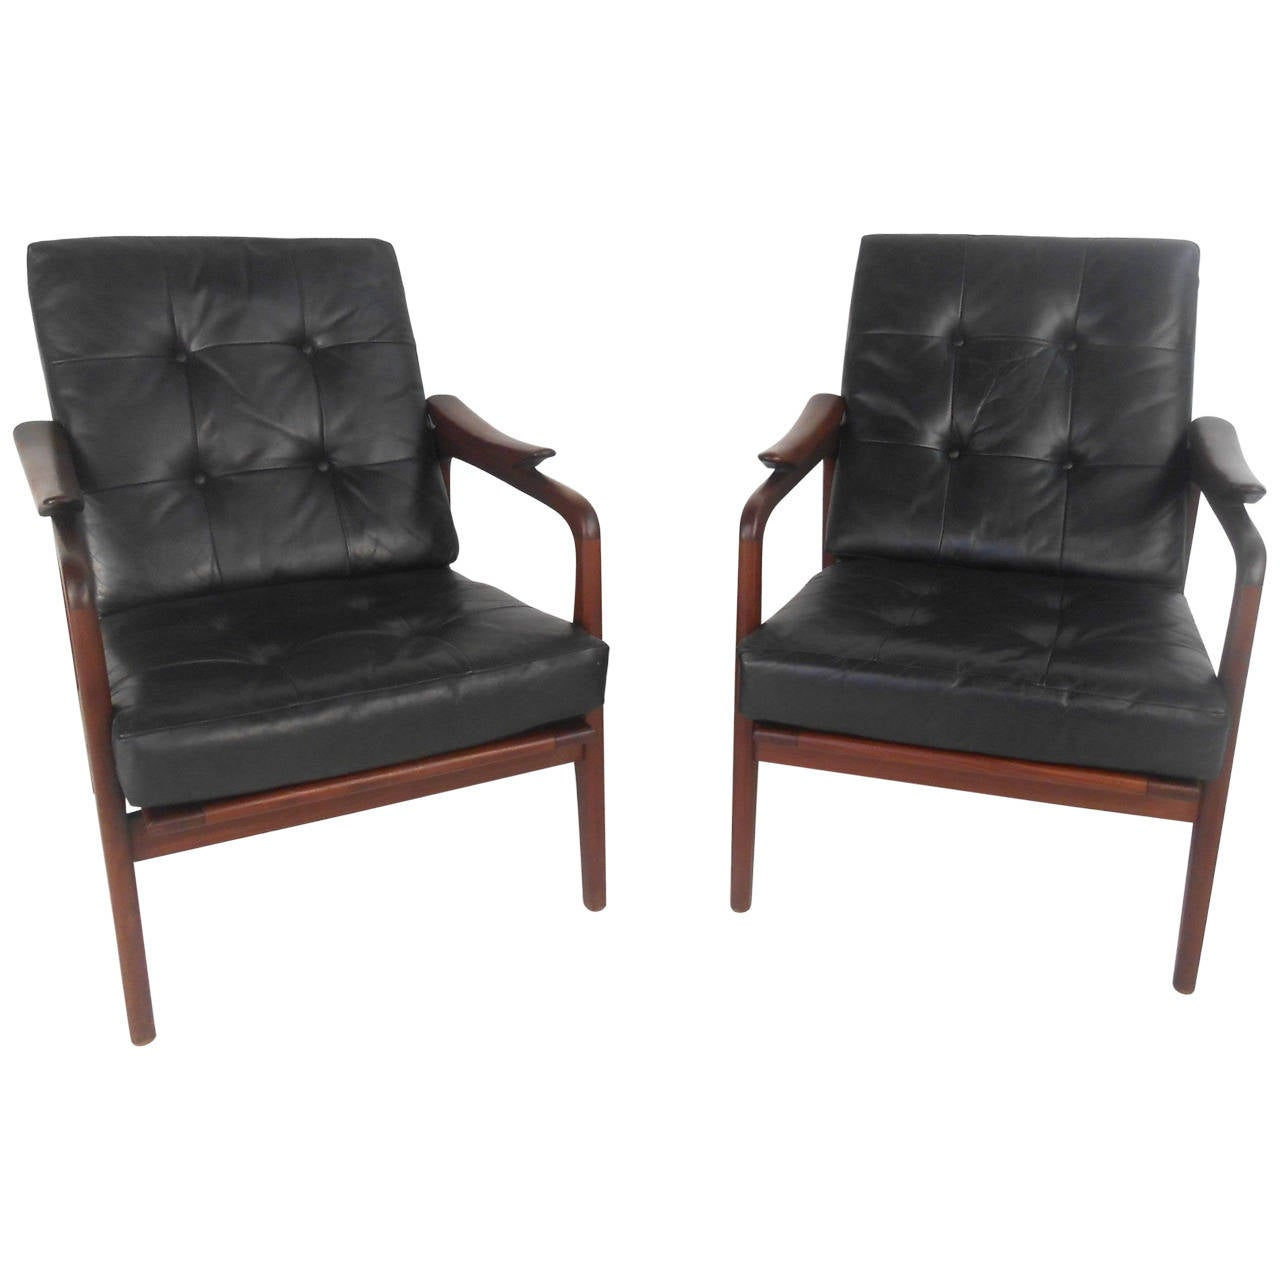 Modern Club Chairs Pair Beautiful Mid Century Modern Leather Lounge Chairs At